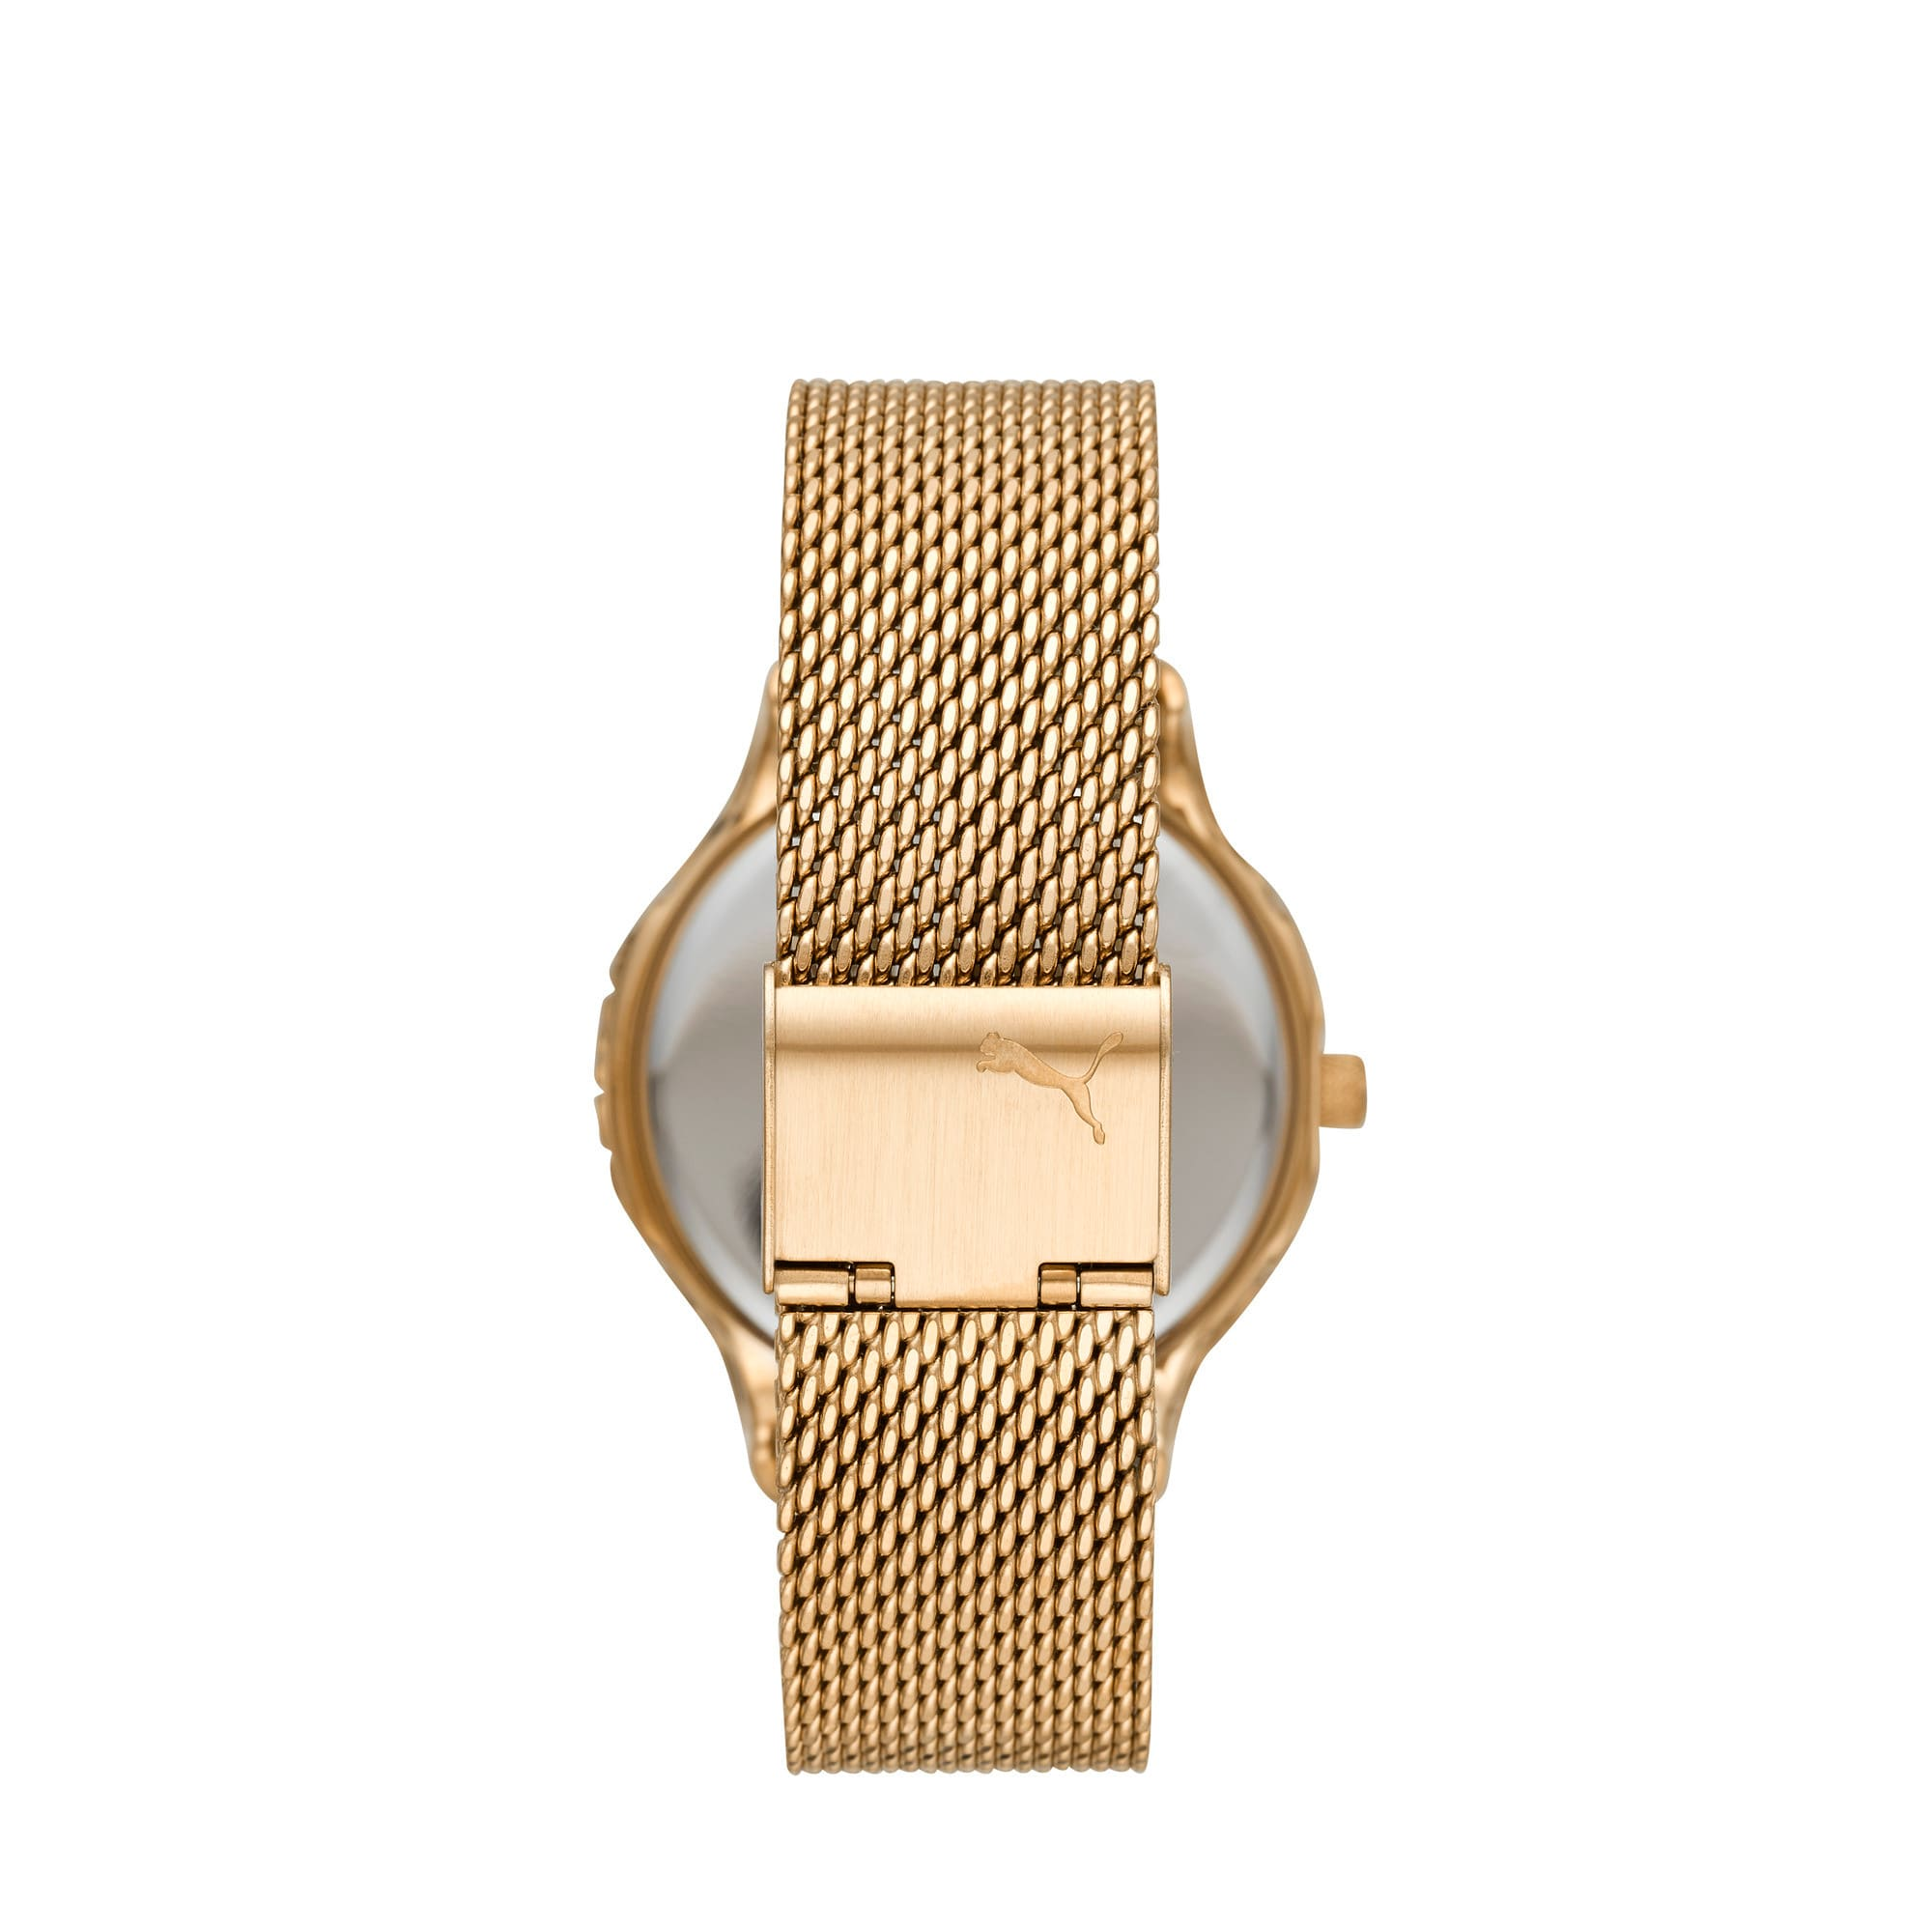 Thumbnail 2 of Reset v1 Watch, Gold/Gold, medium